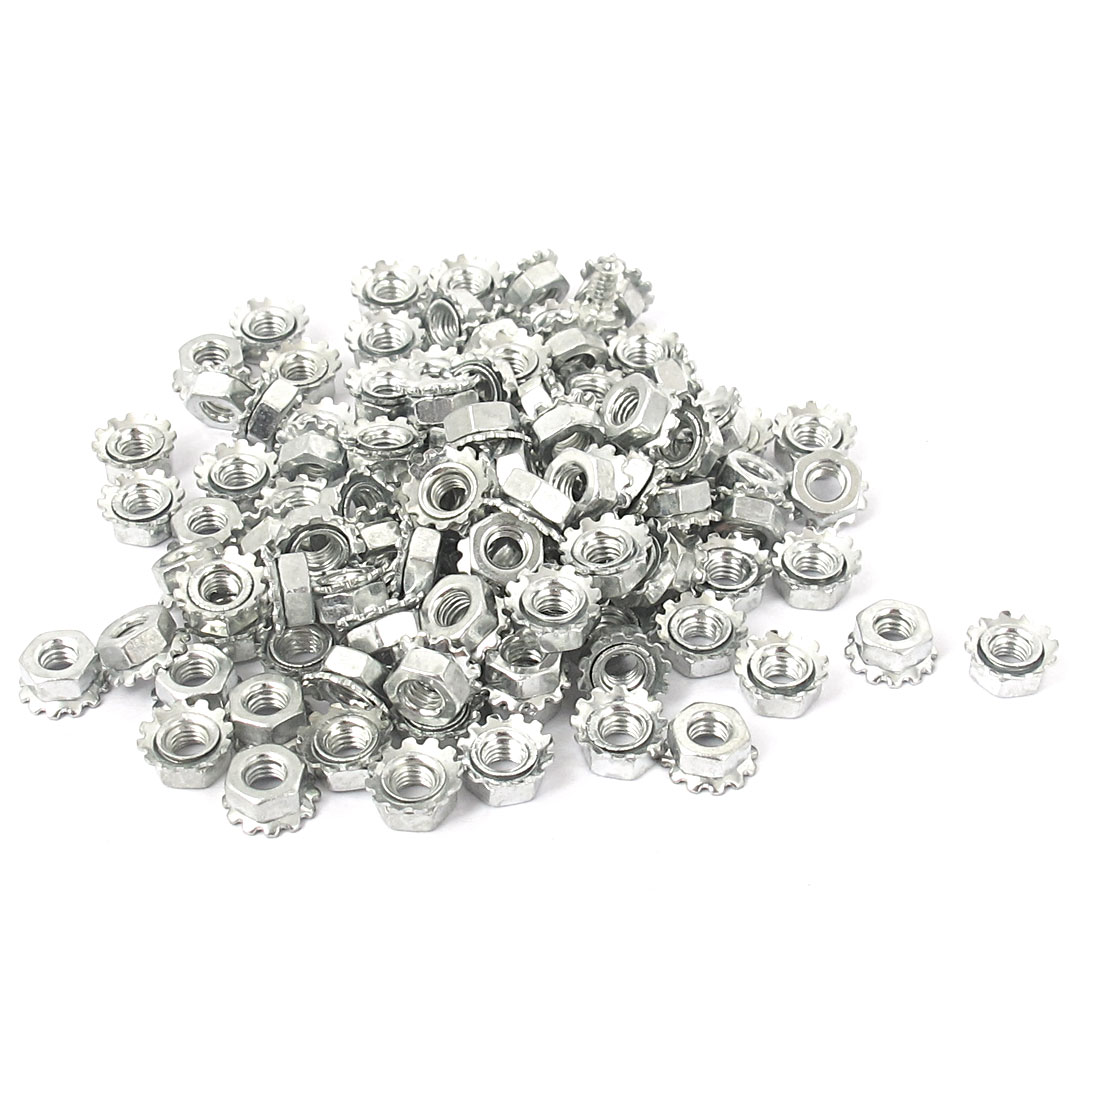 M3 Thread Dia Zinc Plated External Tooth Locknuts Kep Nut Silver Tone 100pcs